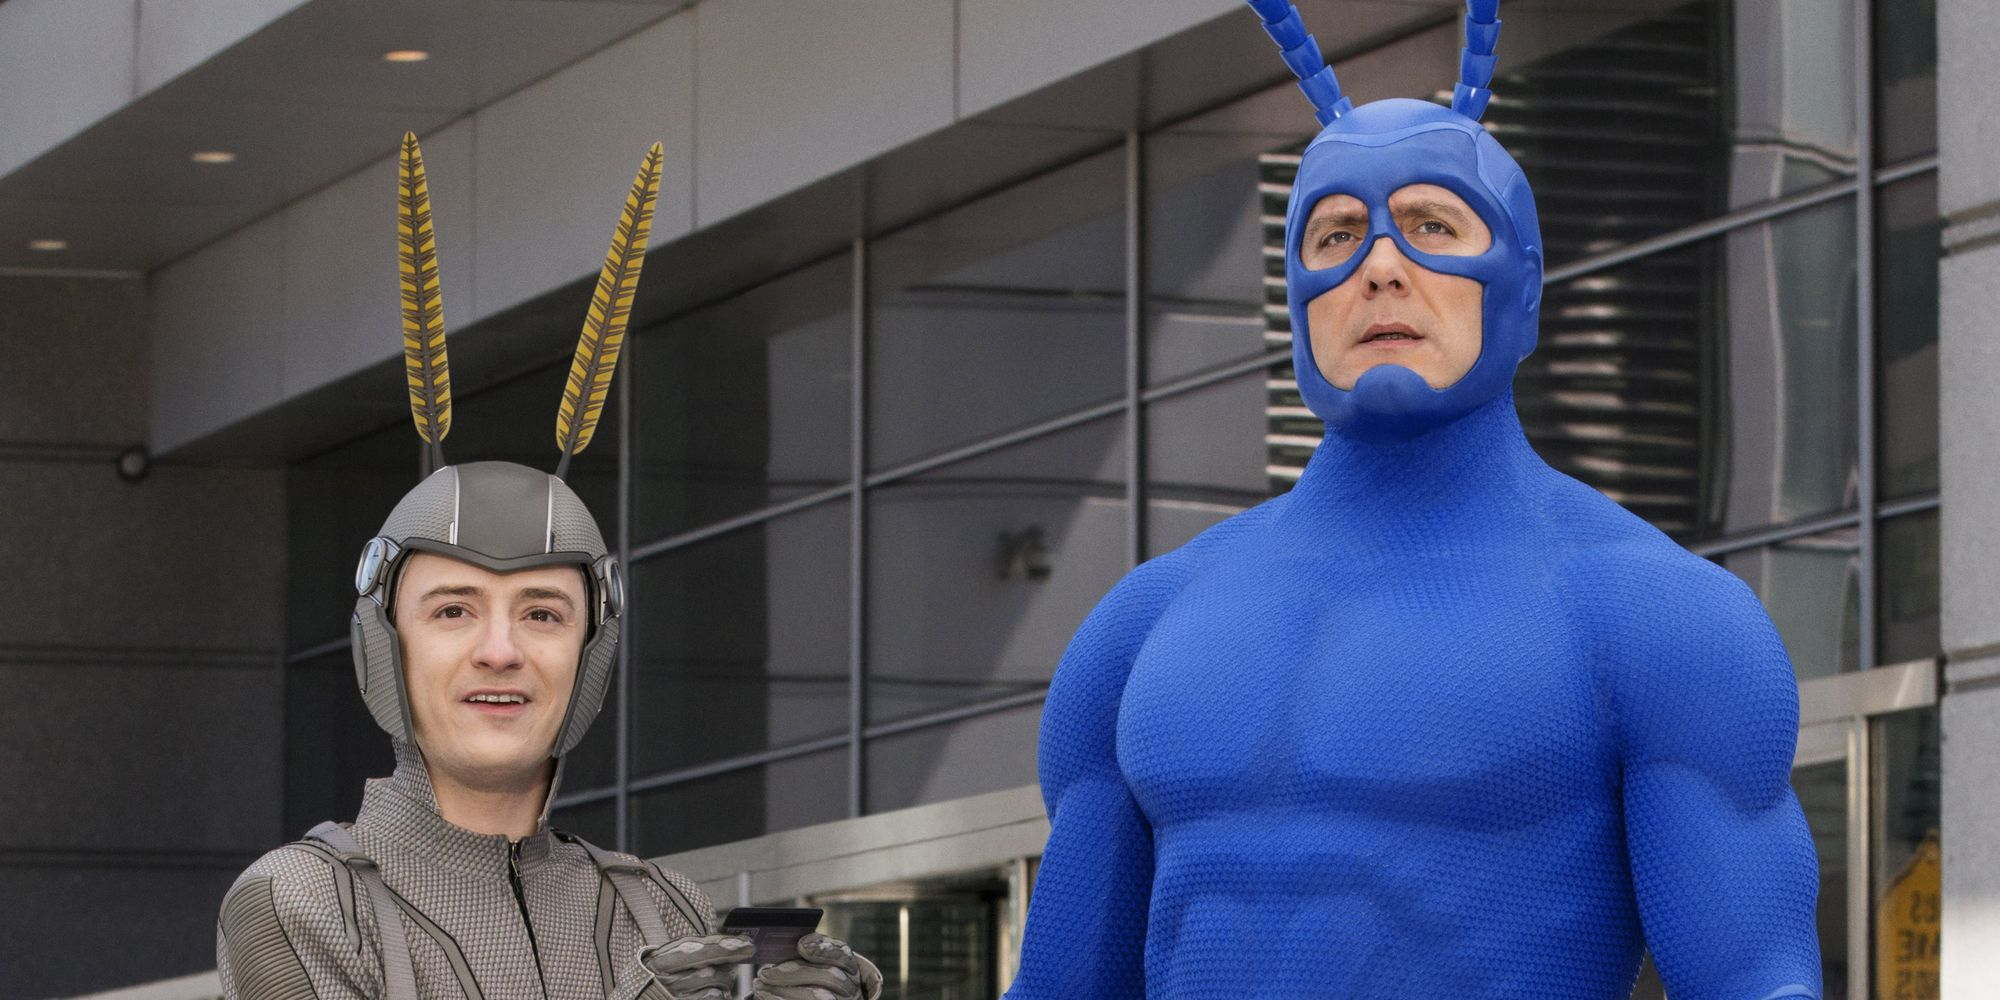 The Tick Season 2: Why The Volume Of Superhero Projects Calls Out For The Tick